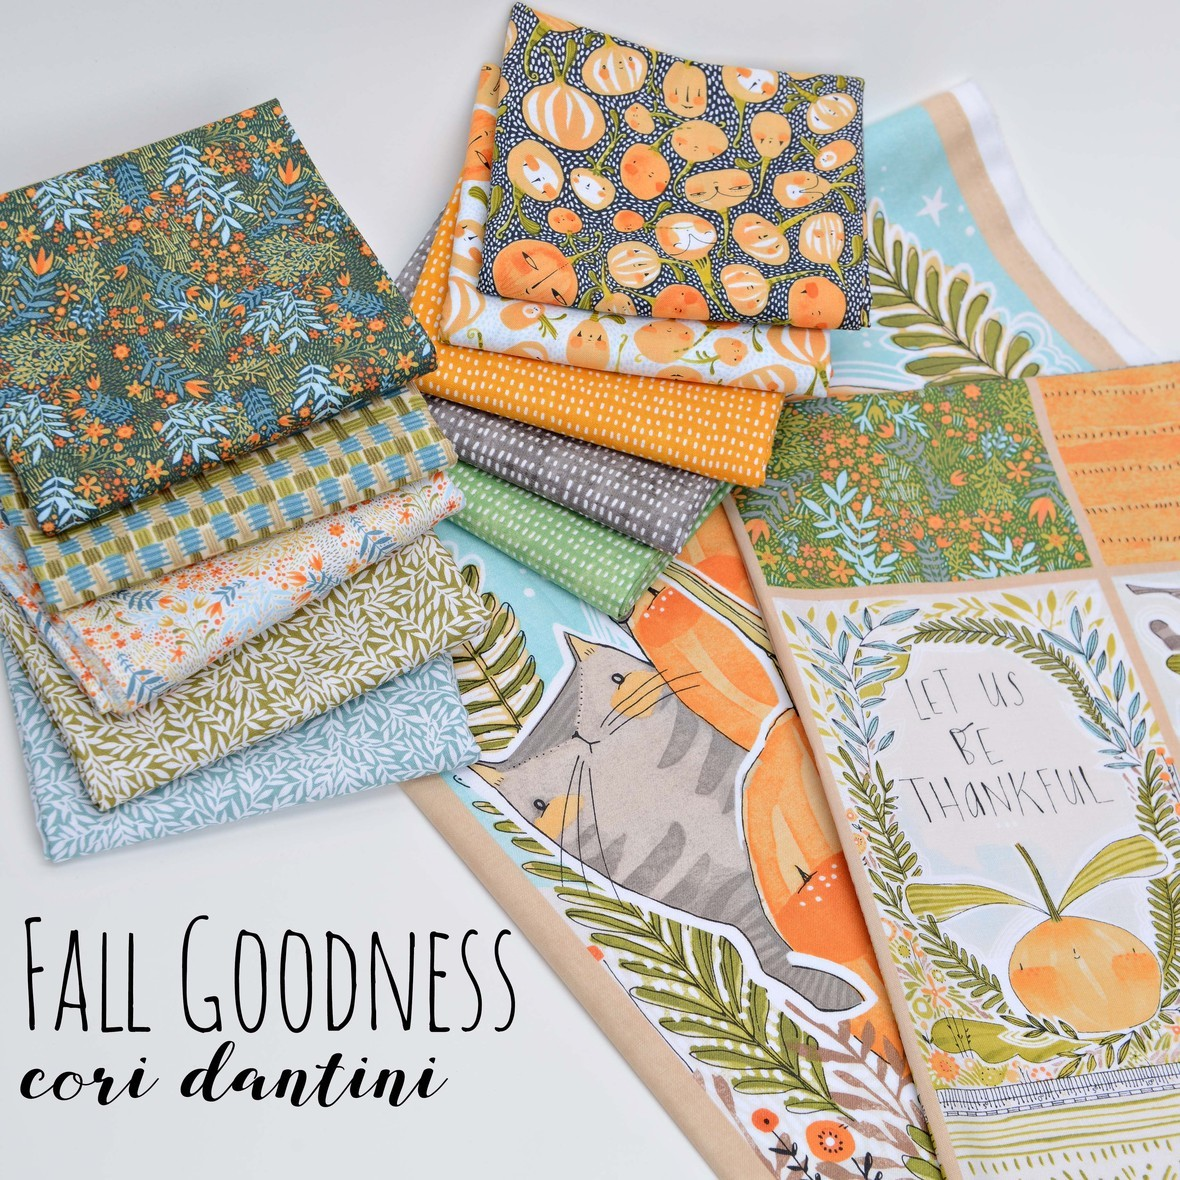 Fall Goodness Fabric Poster 2